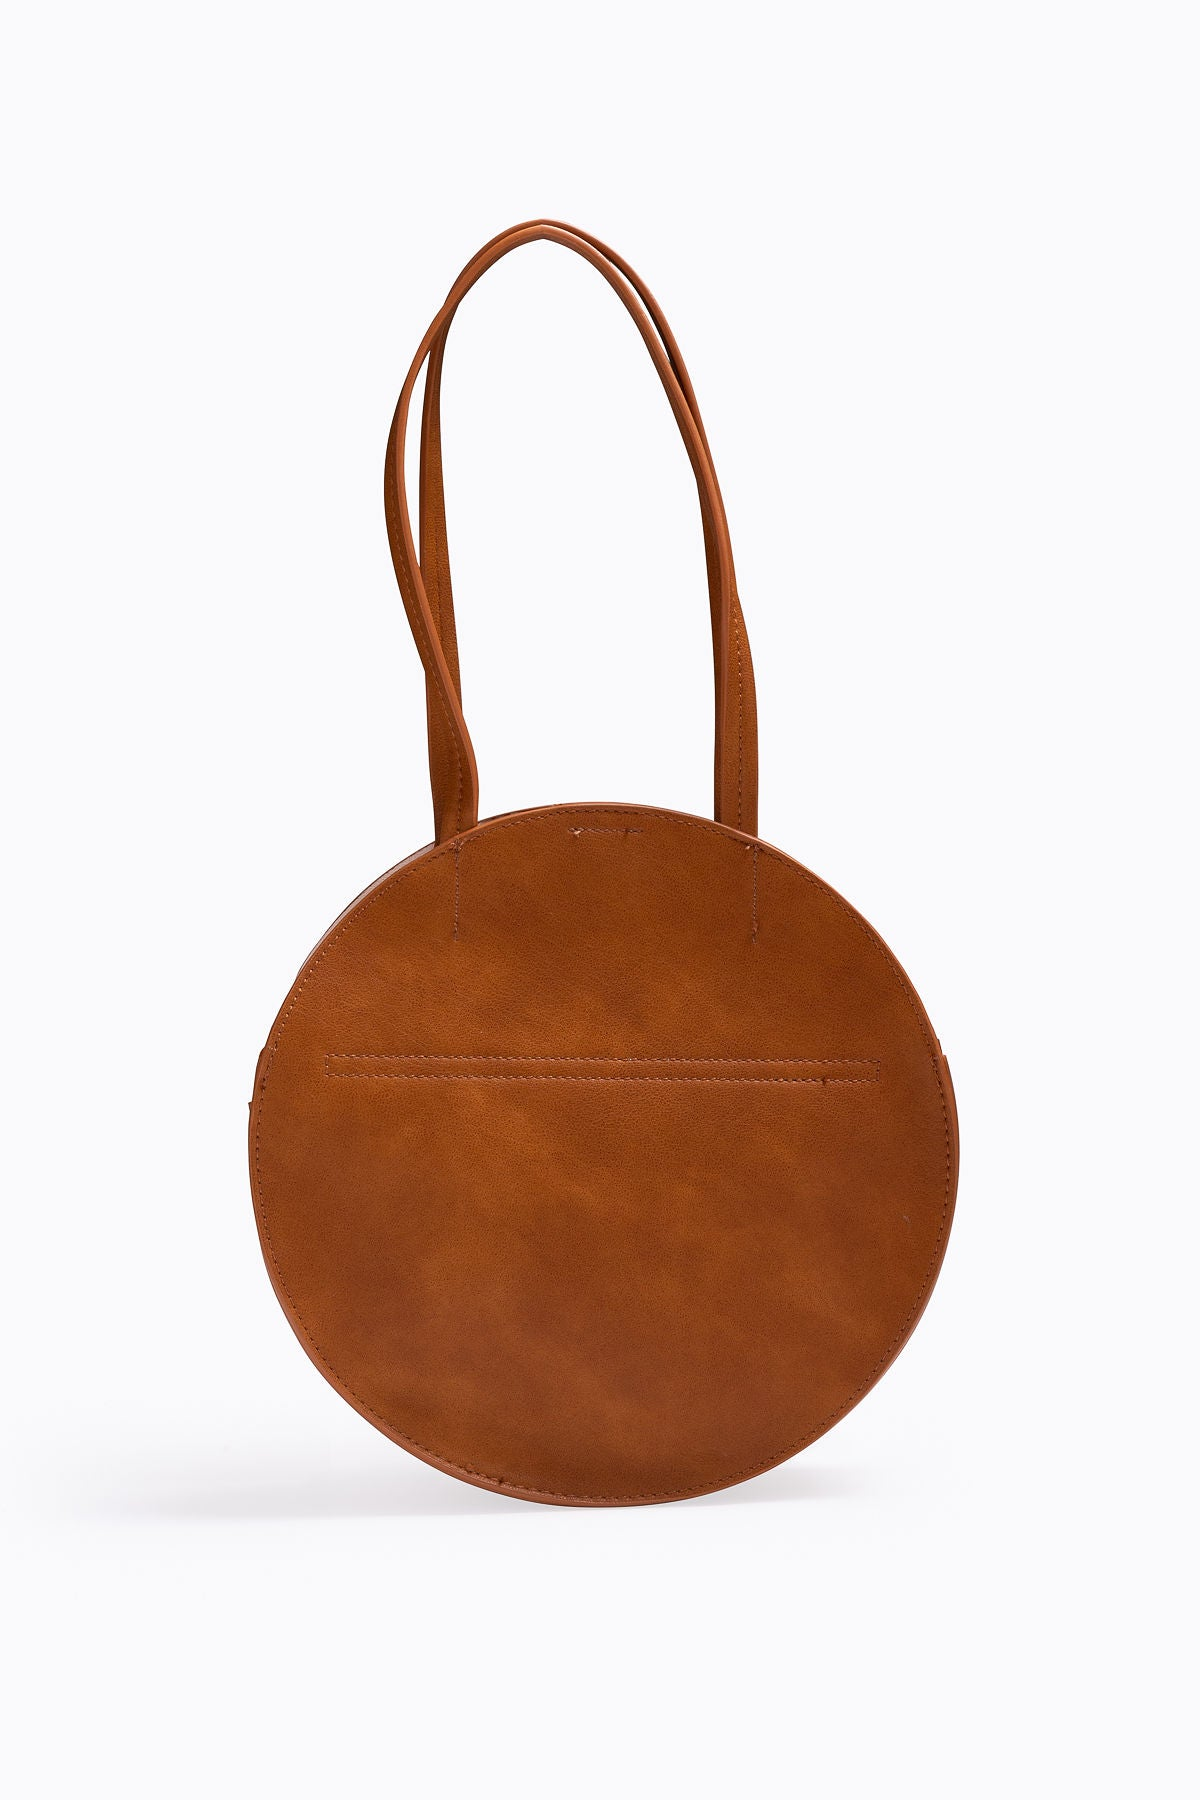 The Yash Round Handbag in Brown – Piper   Scoot